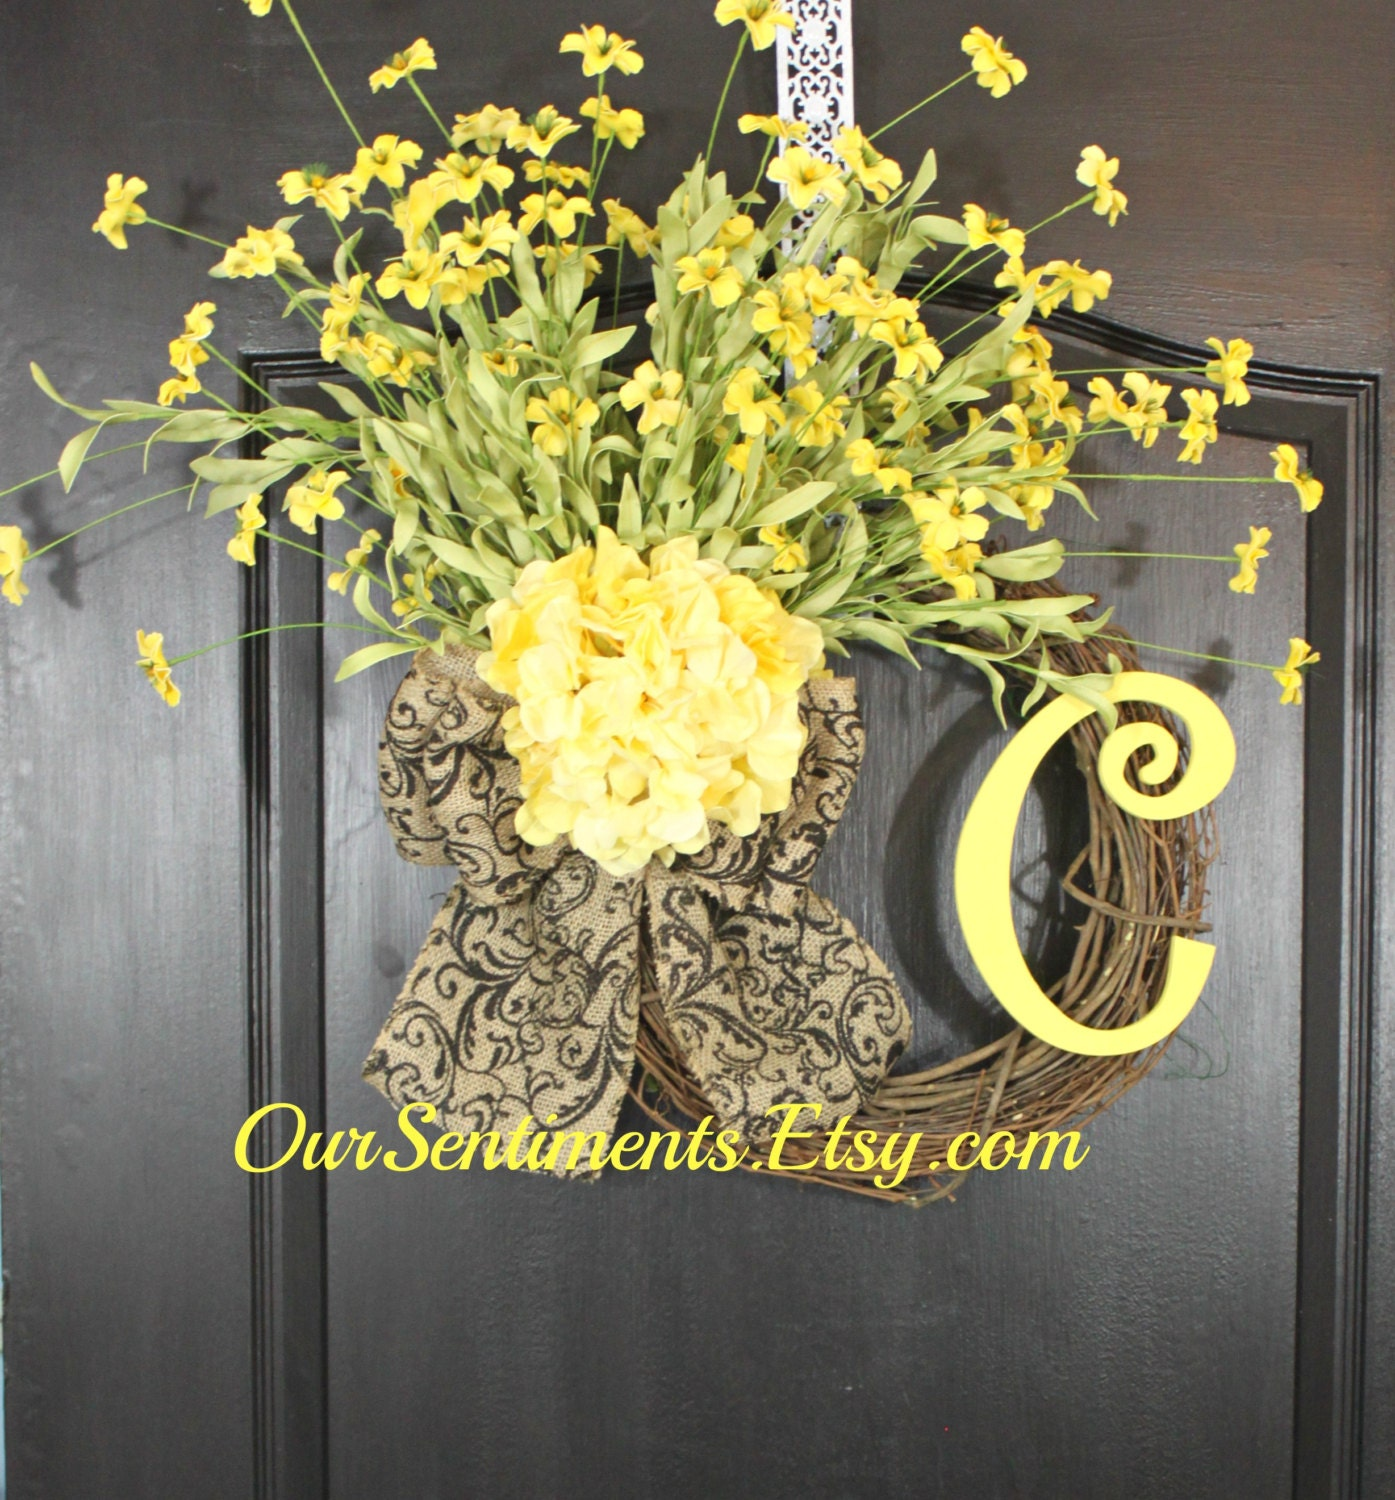 Burlap wreath wreath for door summer wreath by oursentiments - Burlap Wreath Spring Wreath Mothers Day Gift By Oursentiments